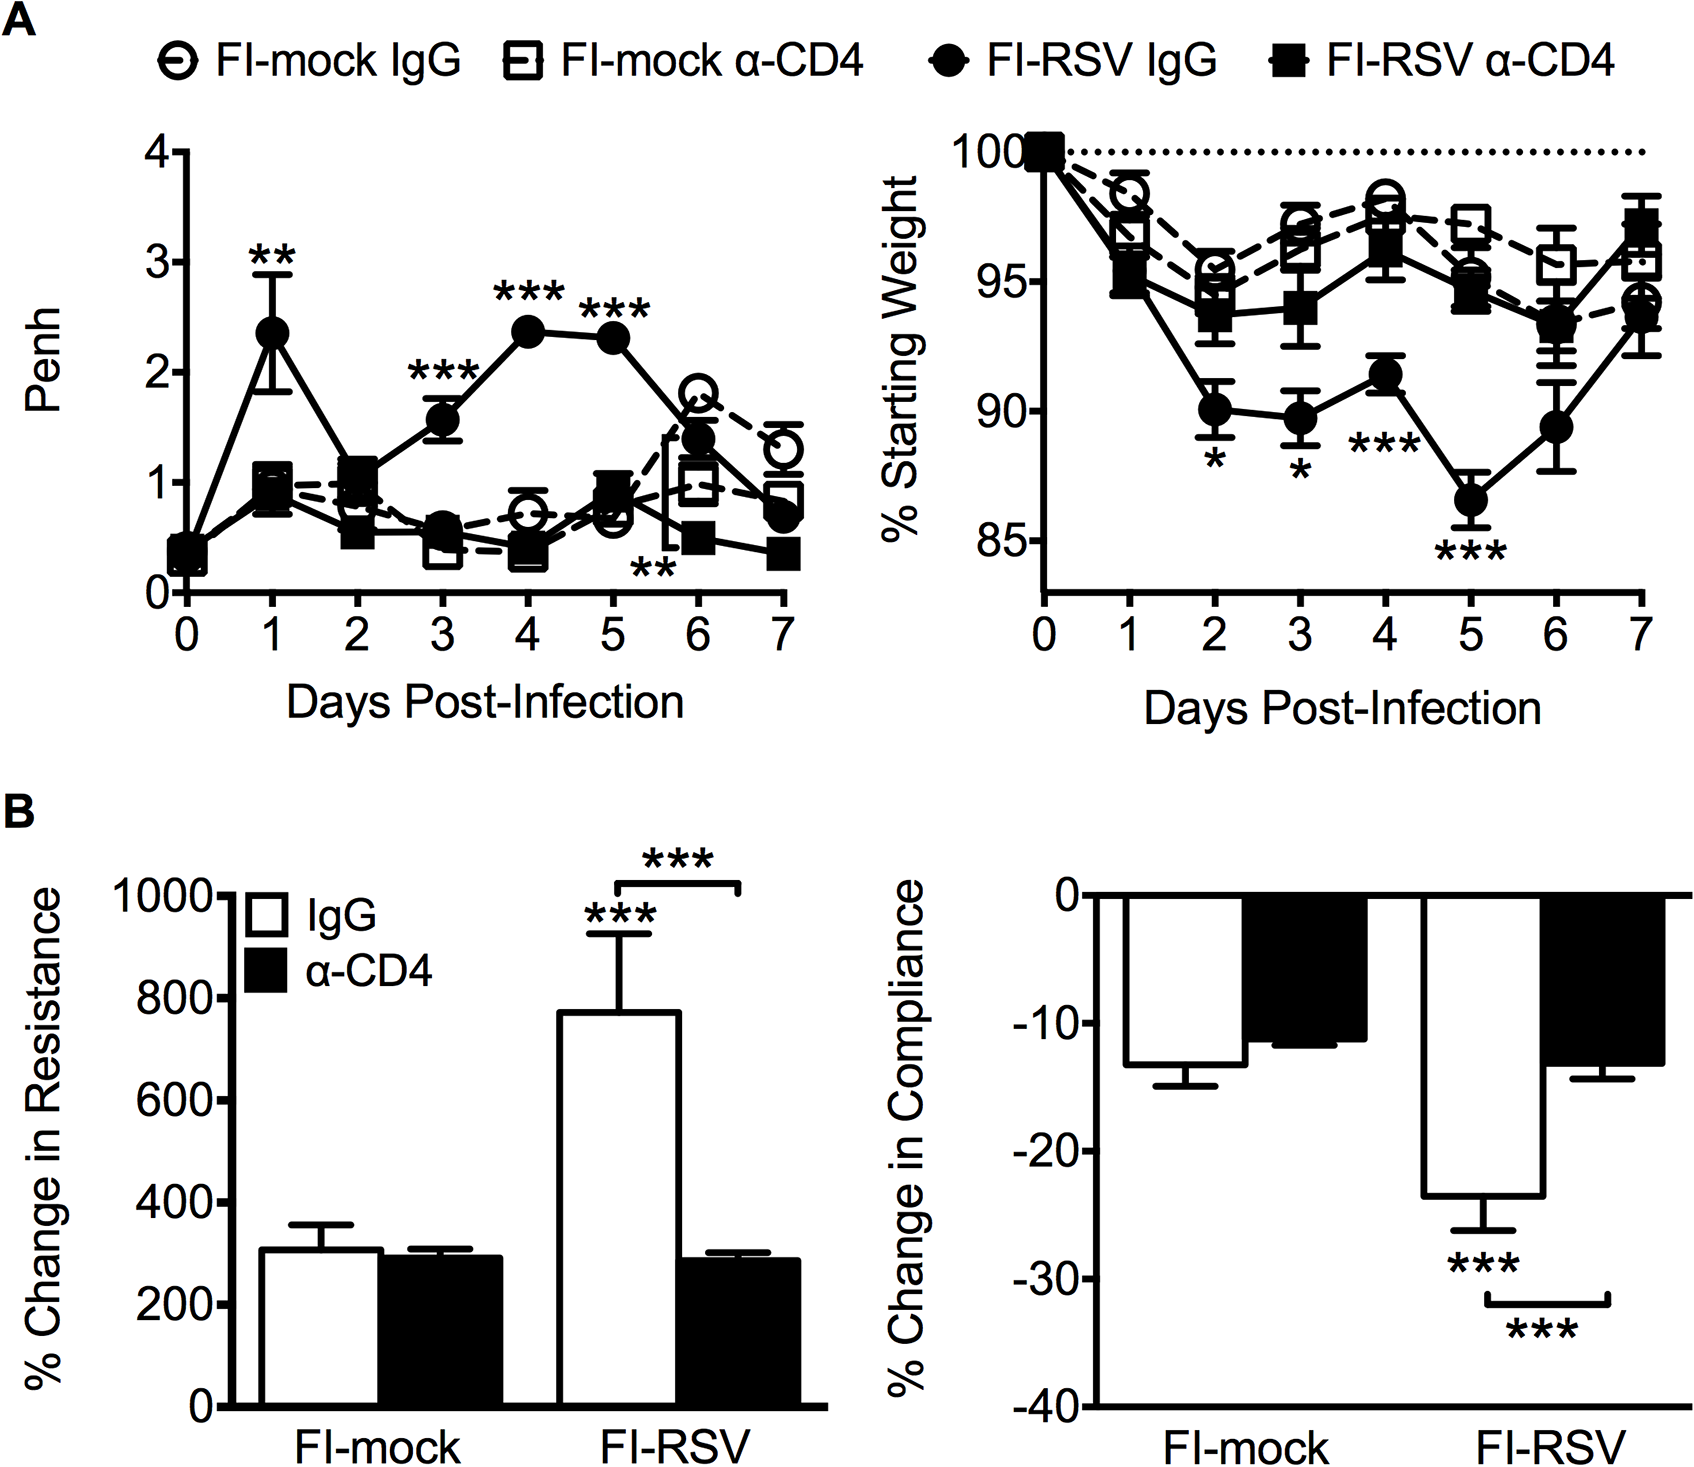 CD4 T cells are required to induce FI-RSV VED.